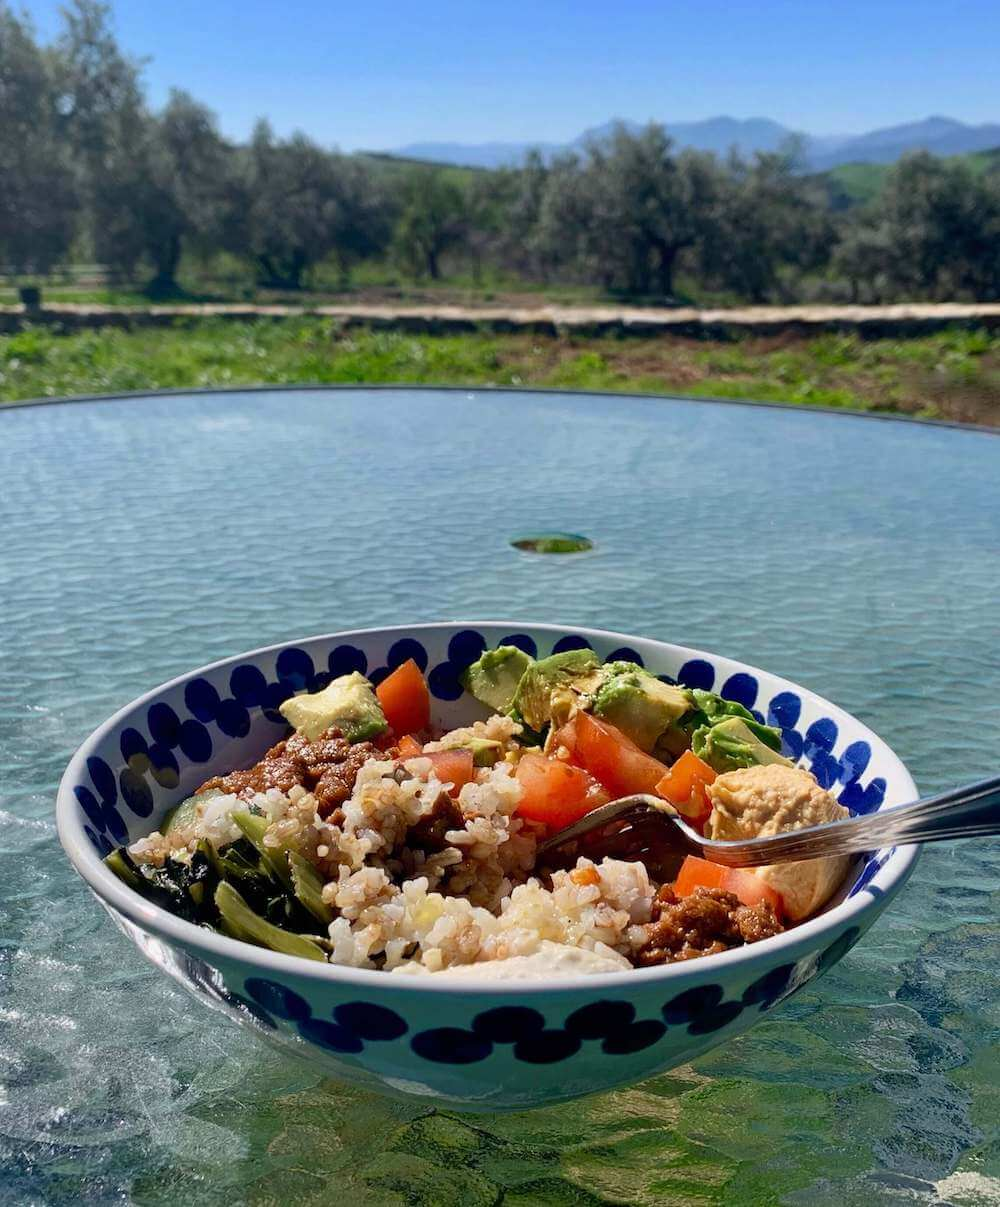 Bowl of food on a table in a garden with a view